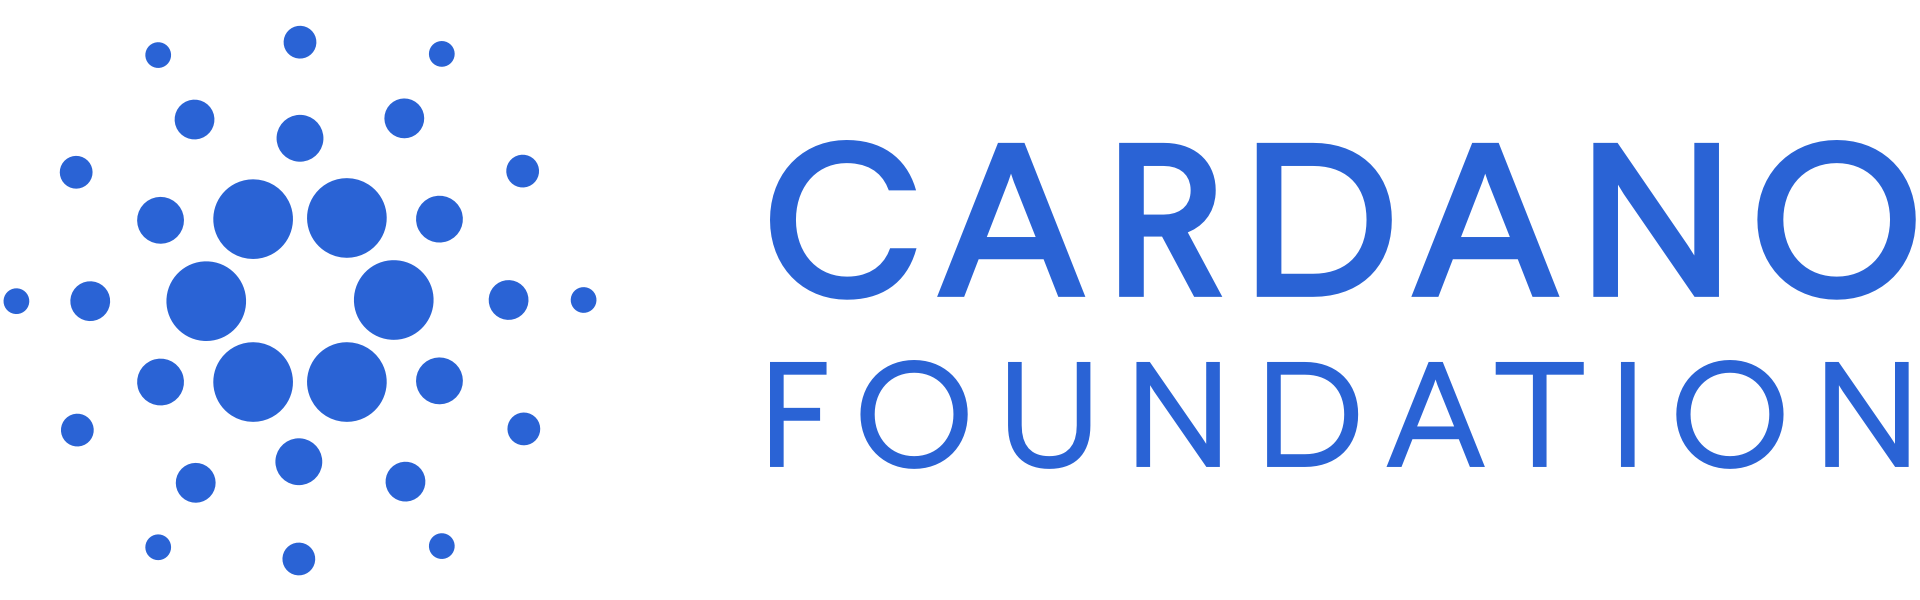 Cardano Foundation